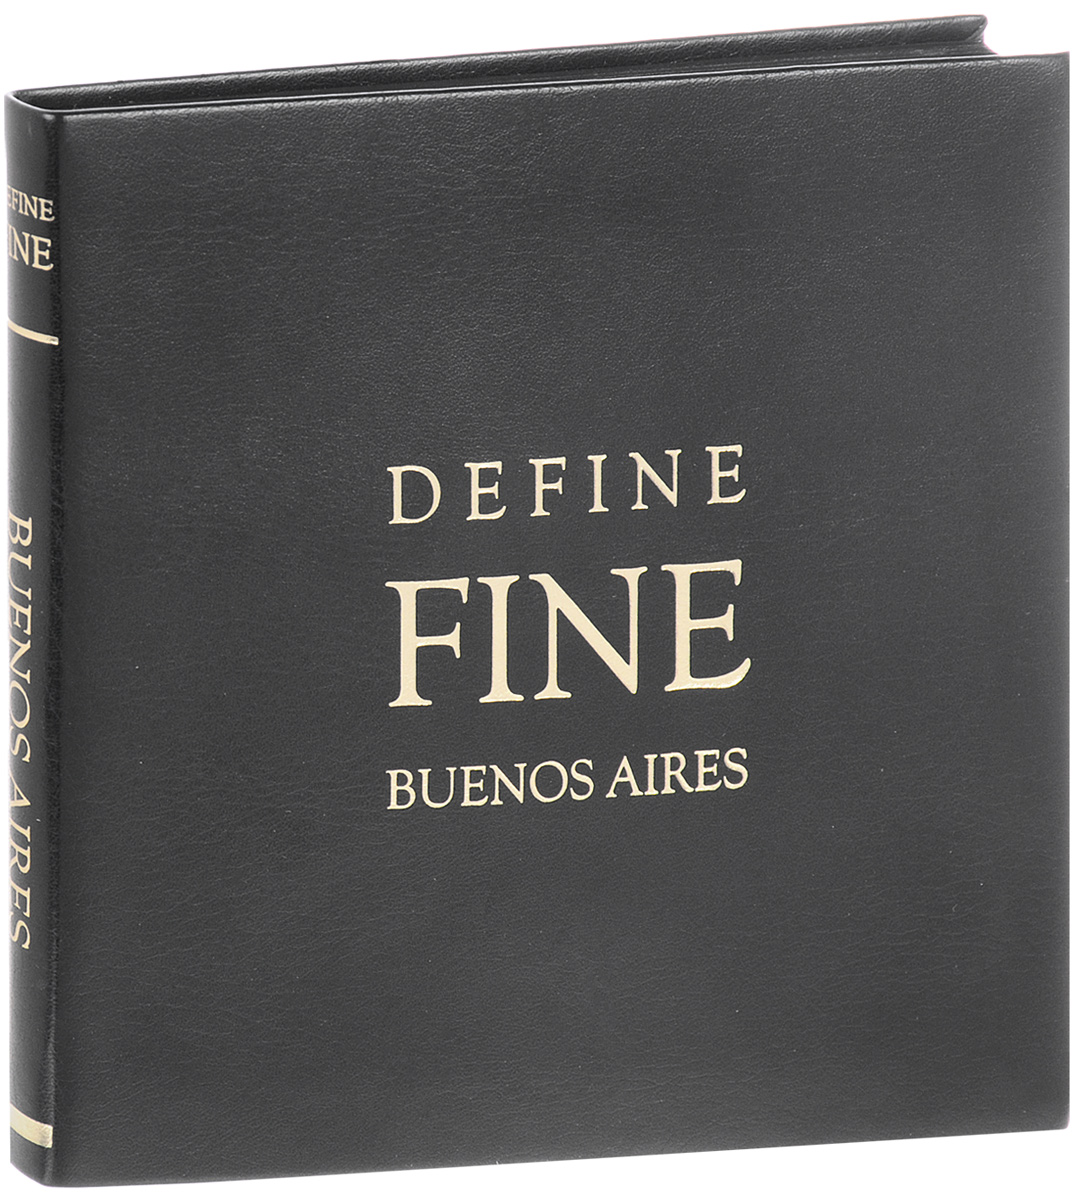 Buenos Aires: Define Fine Guide all the bright places